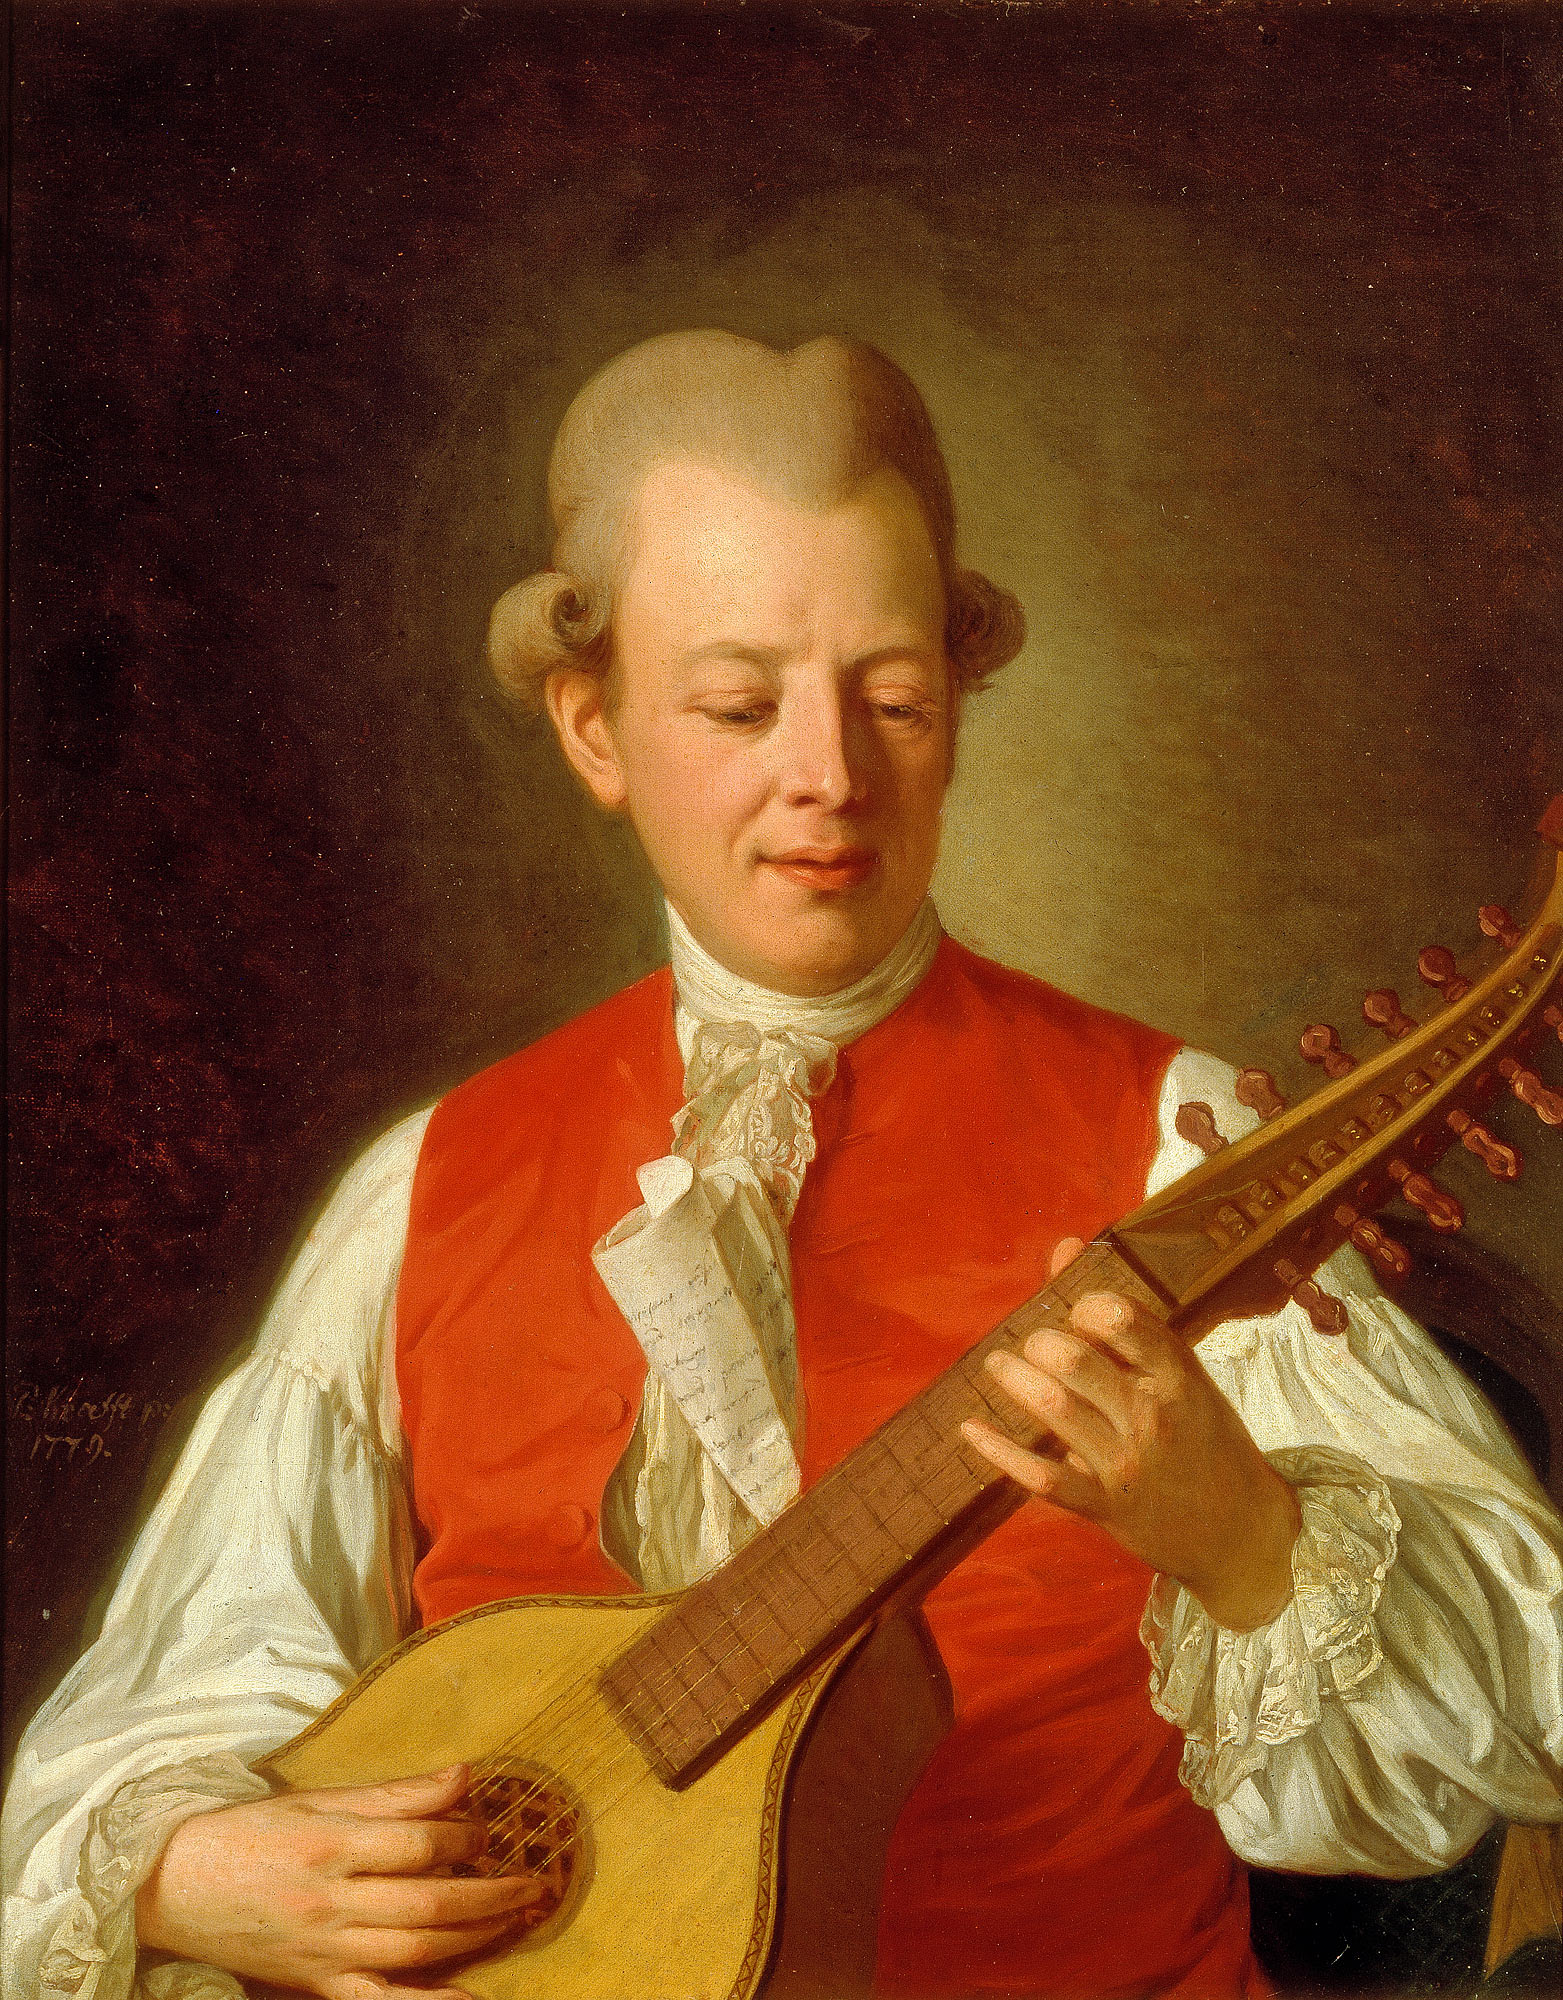 Carl Michael Bellman, portrayed by Per Krafft 1779